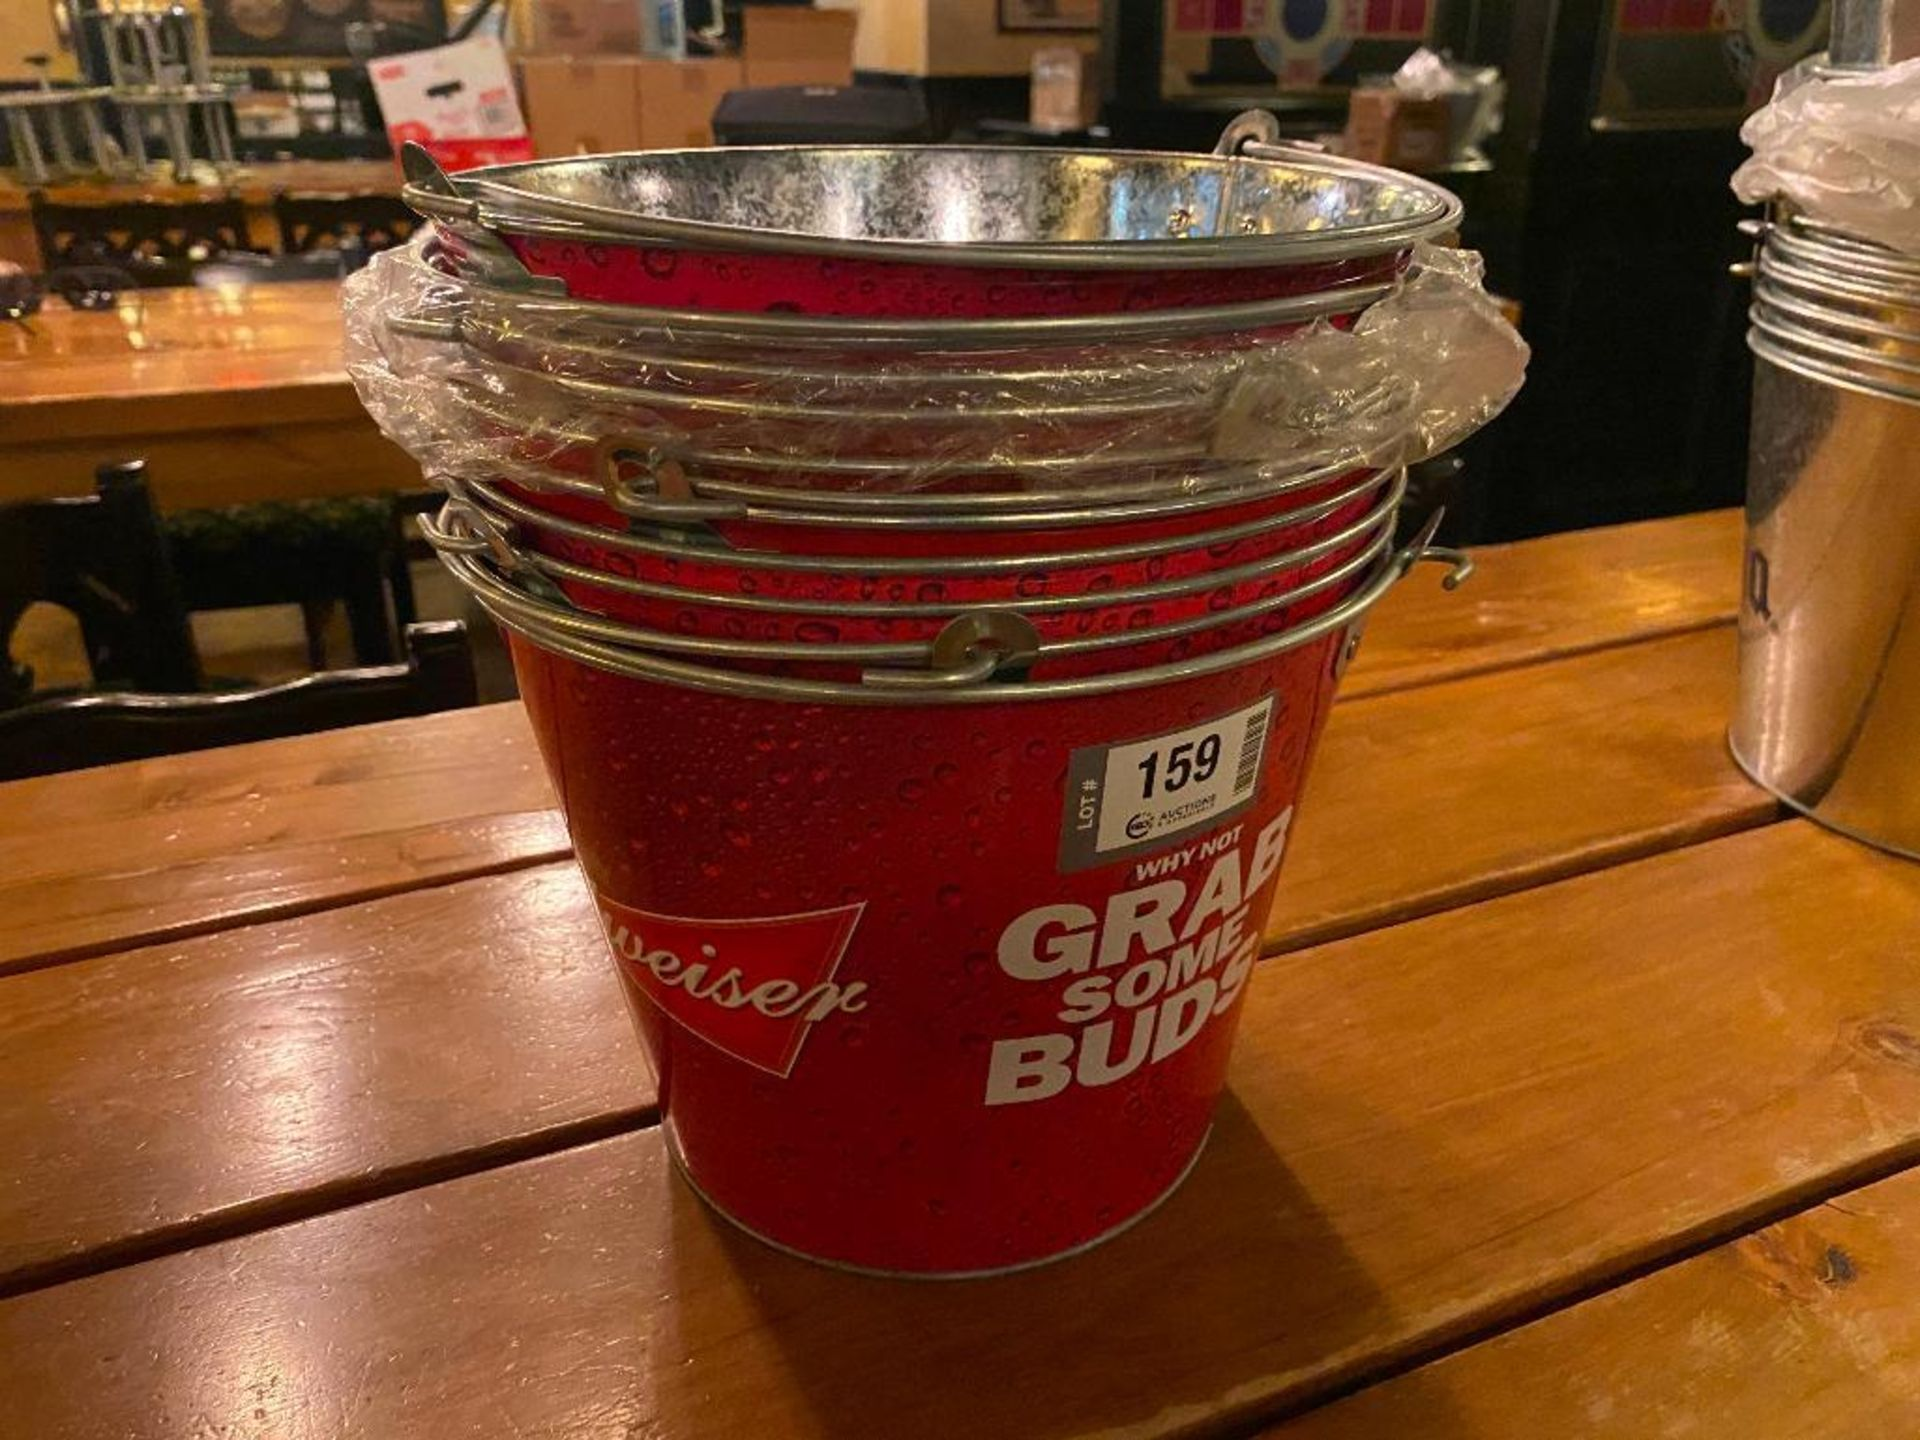 LOT OF BUDWEISER BRANDED METAL PAILS - Image 2 of 2